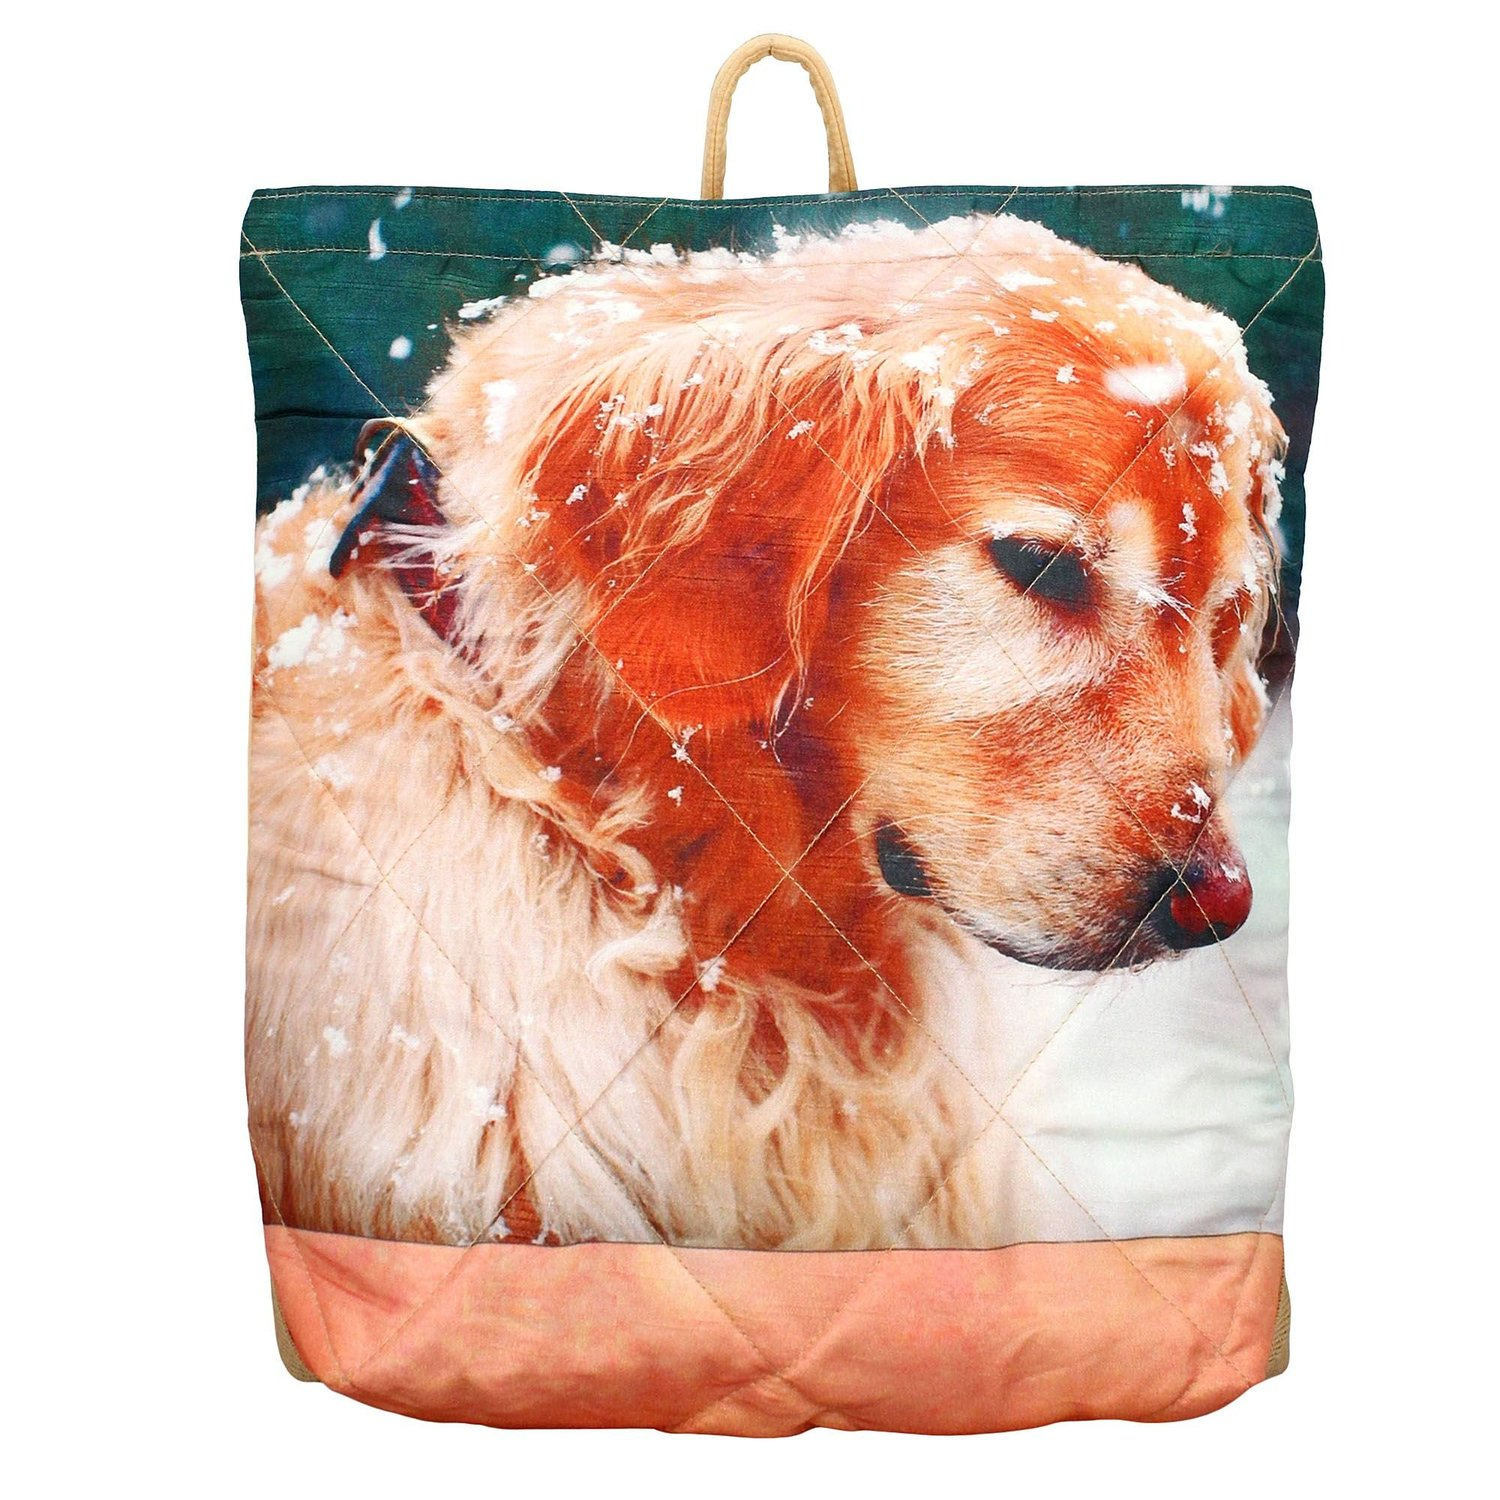 Digital Graphic Dog Tote Bag - Adorable Print - Polyester Faux Silk - 12x12x4 In